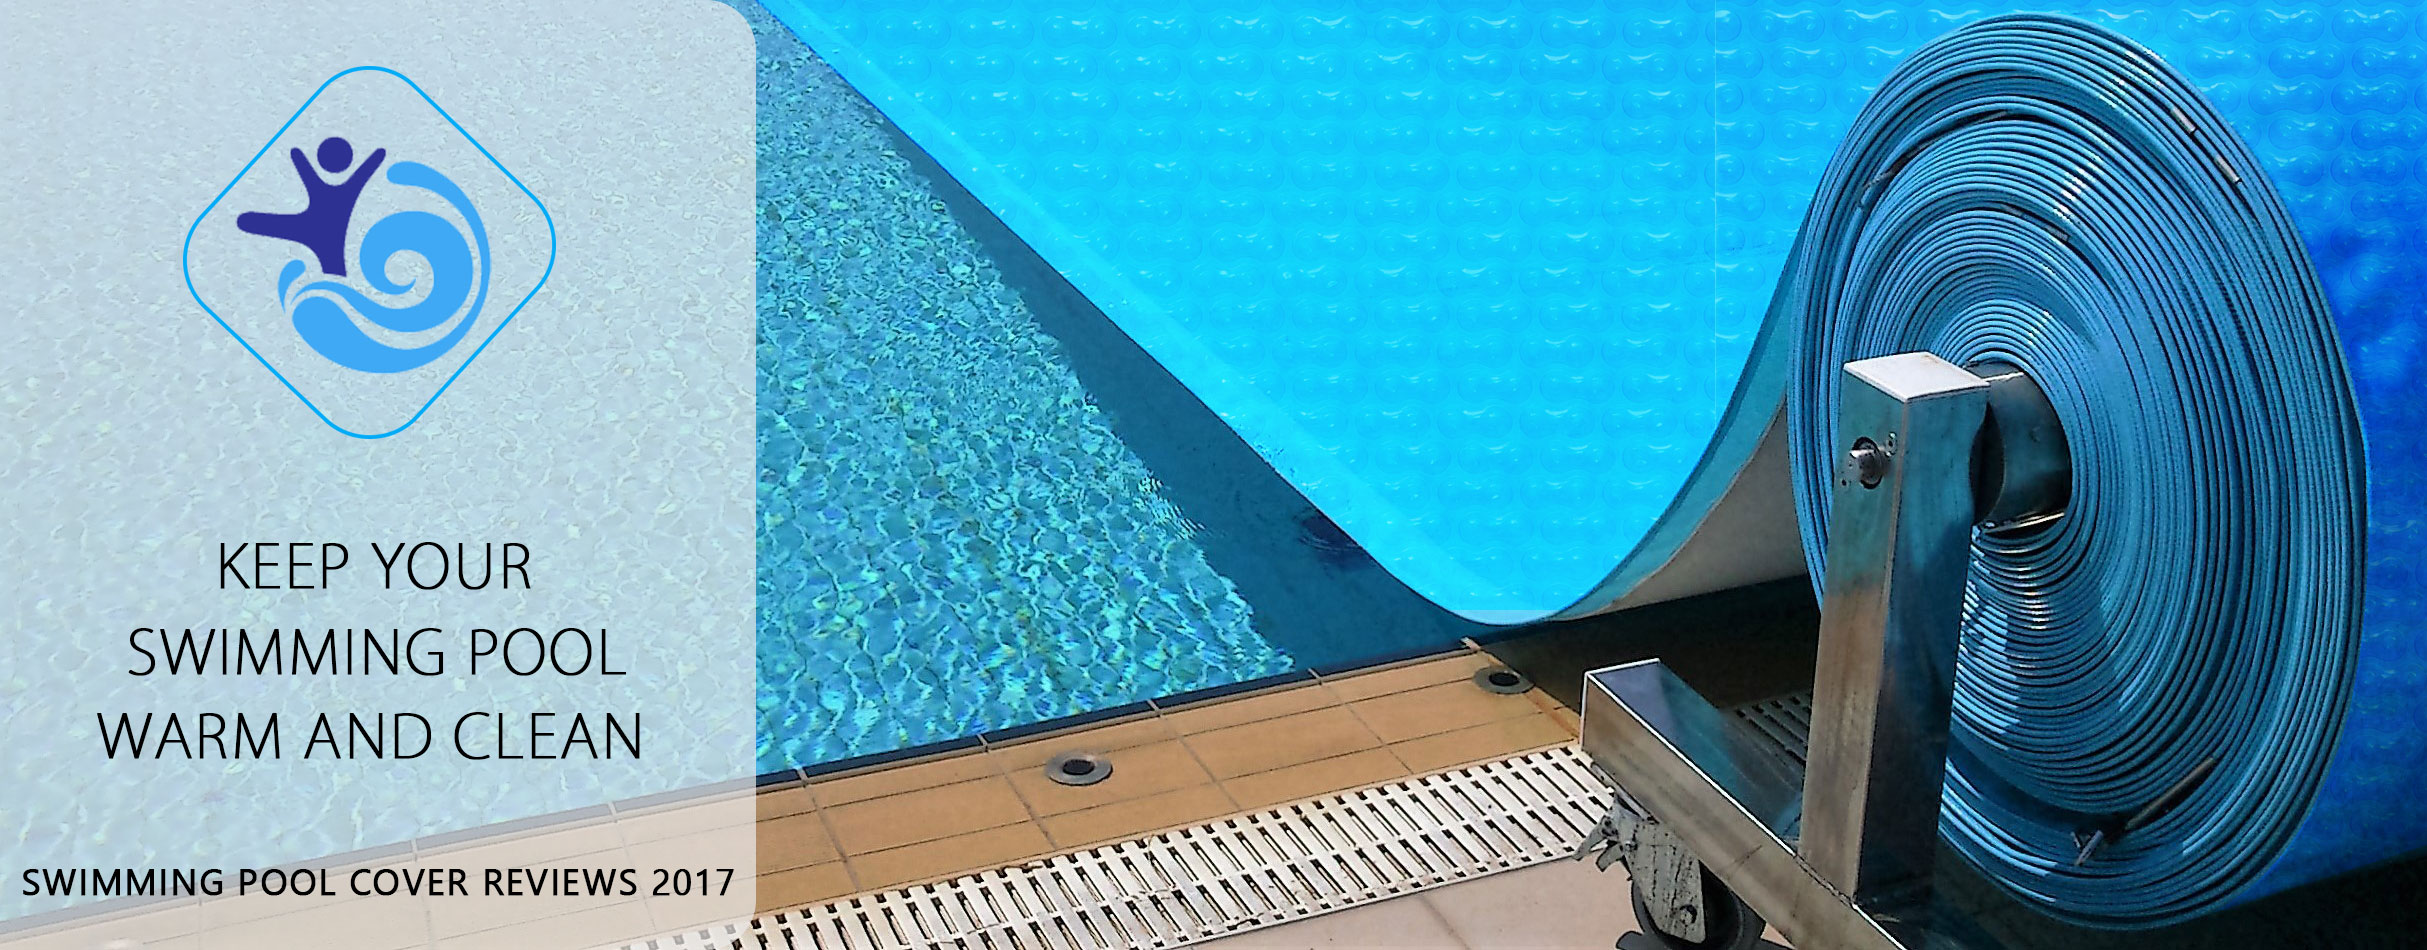 Intex pool covers awesome innovative home design Intex swimming pool accessories south africa